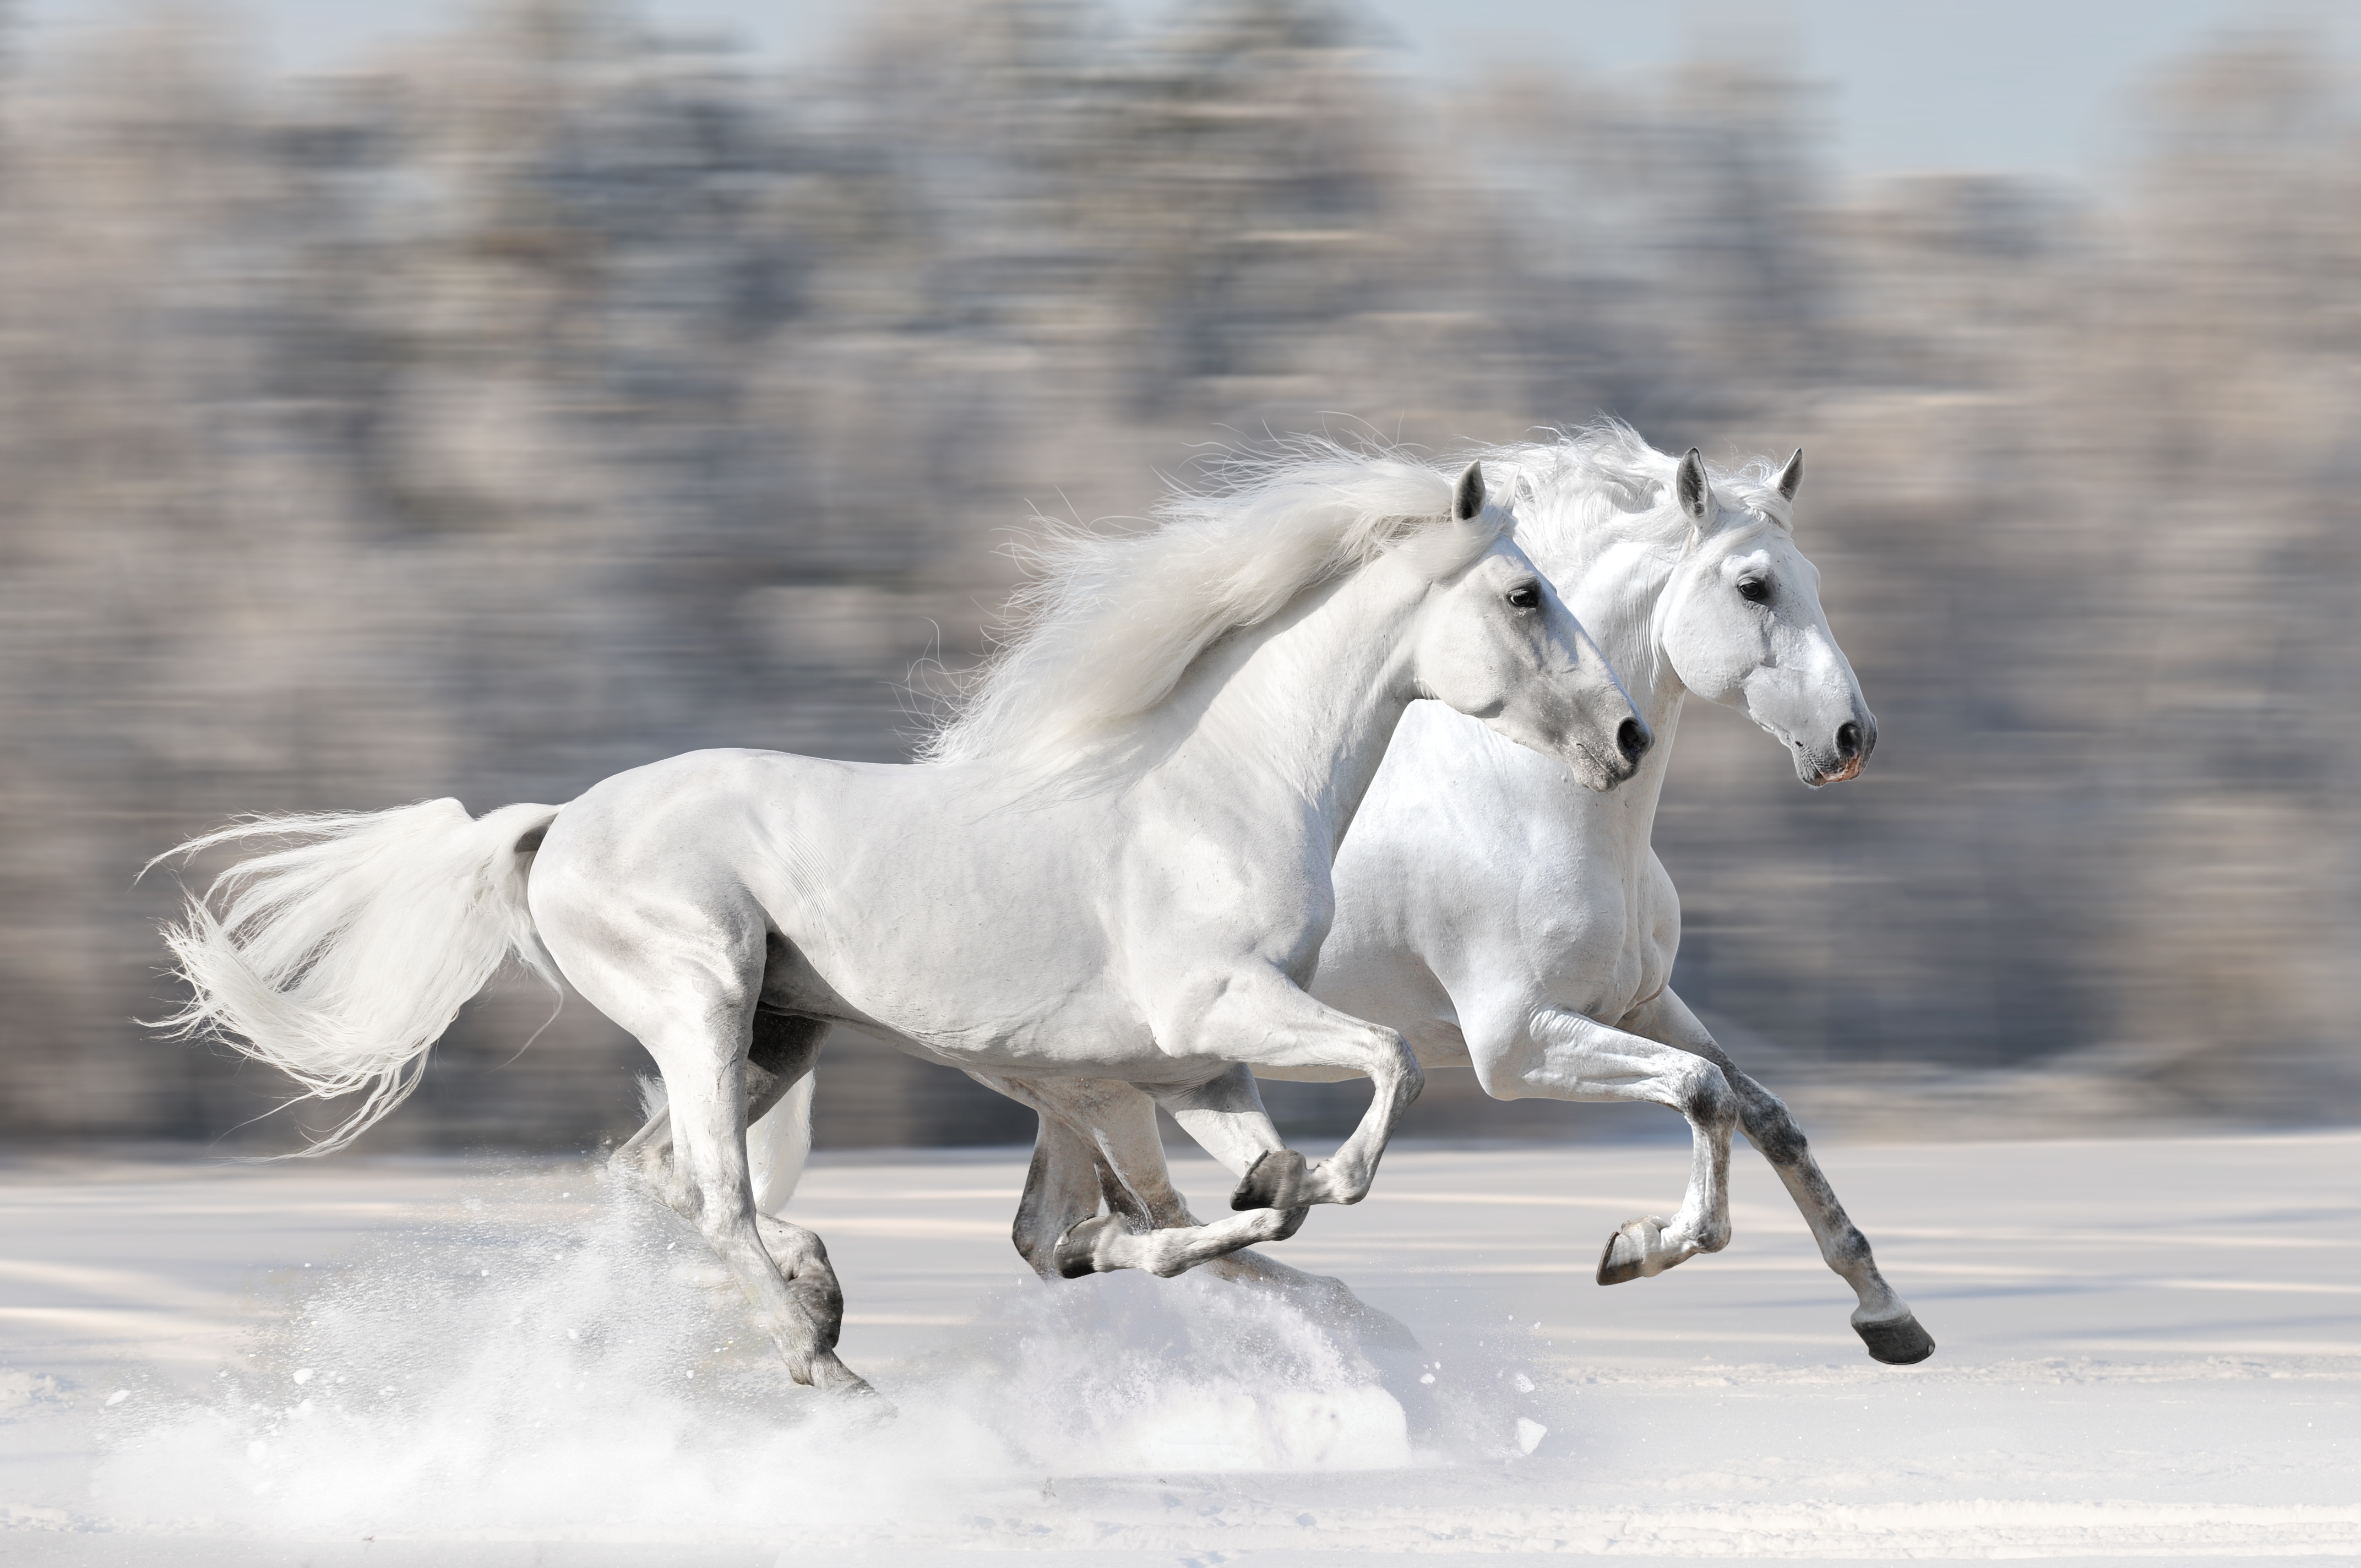 two white horses running